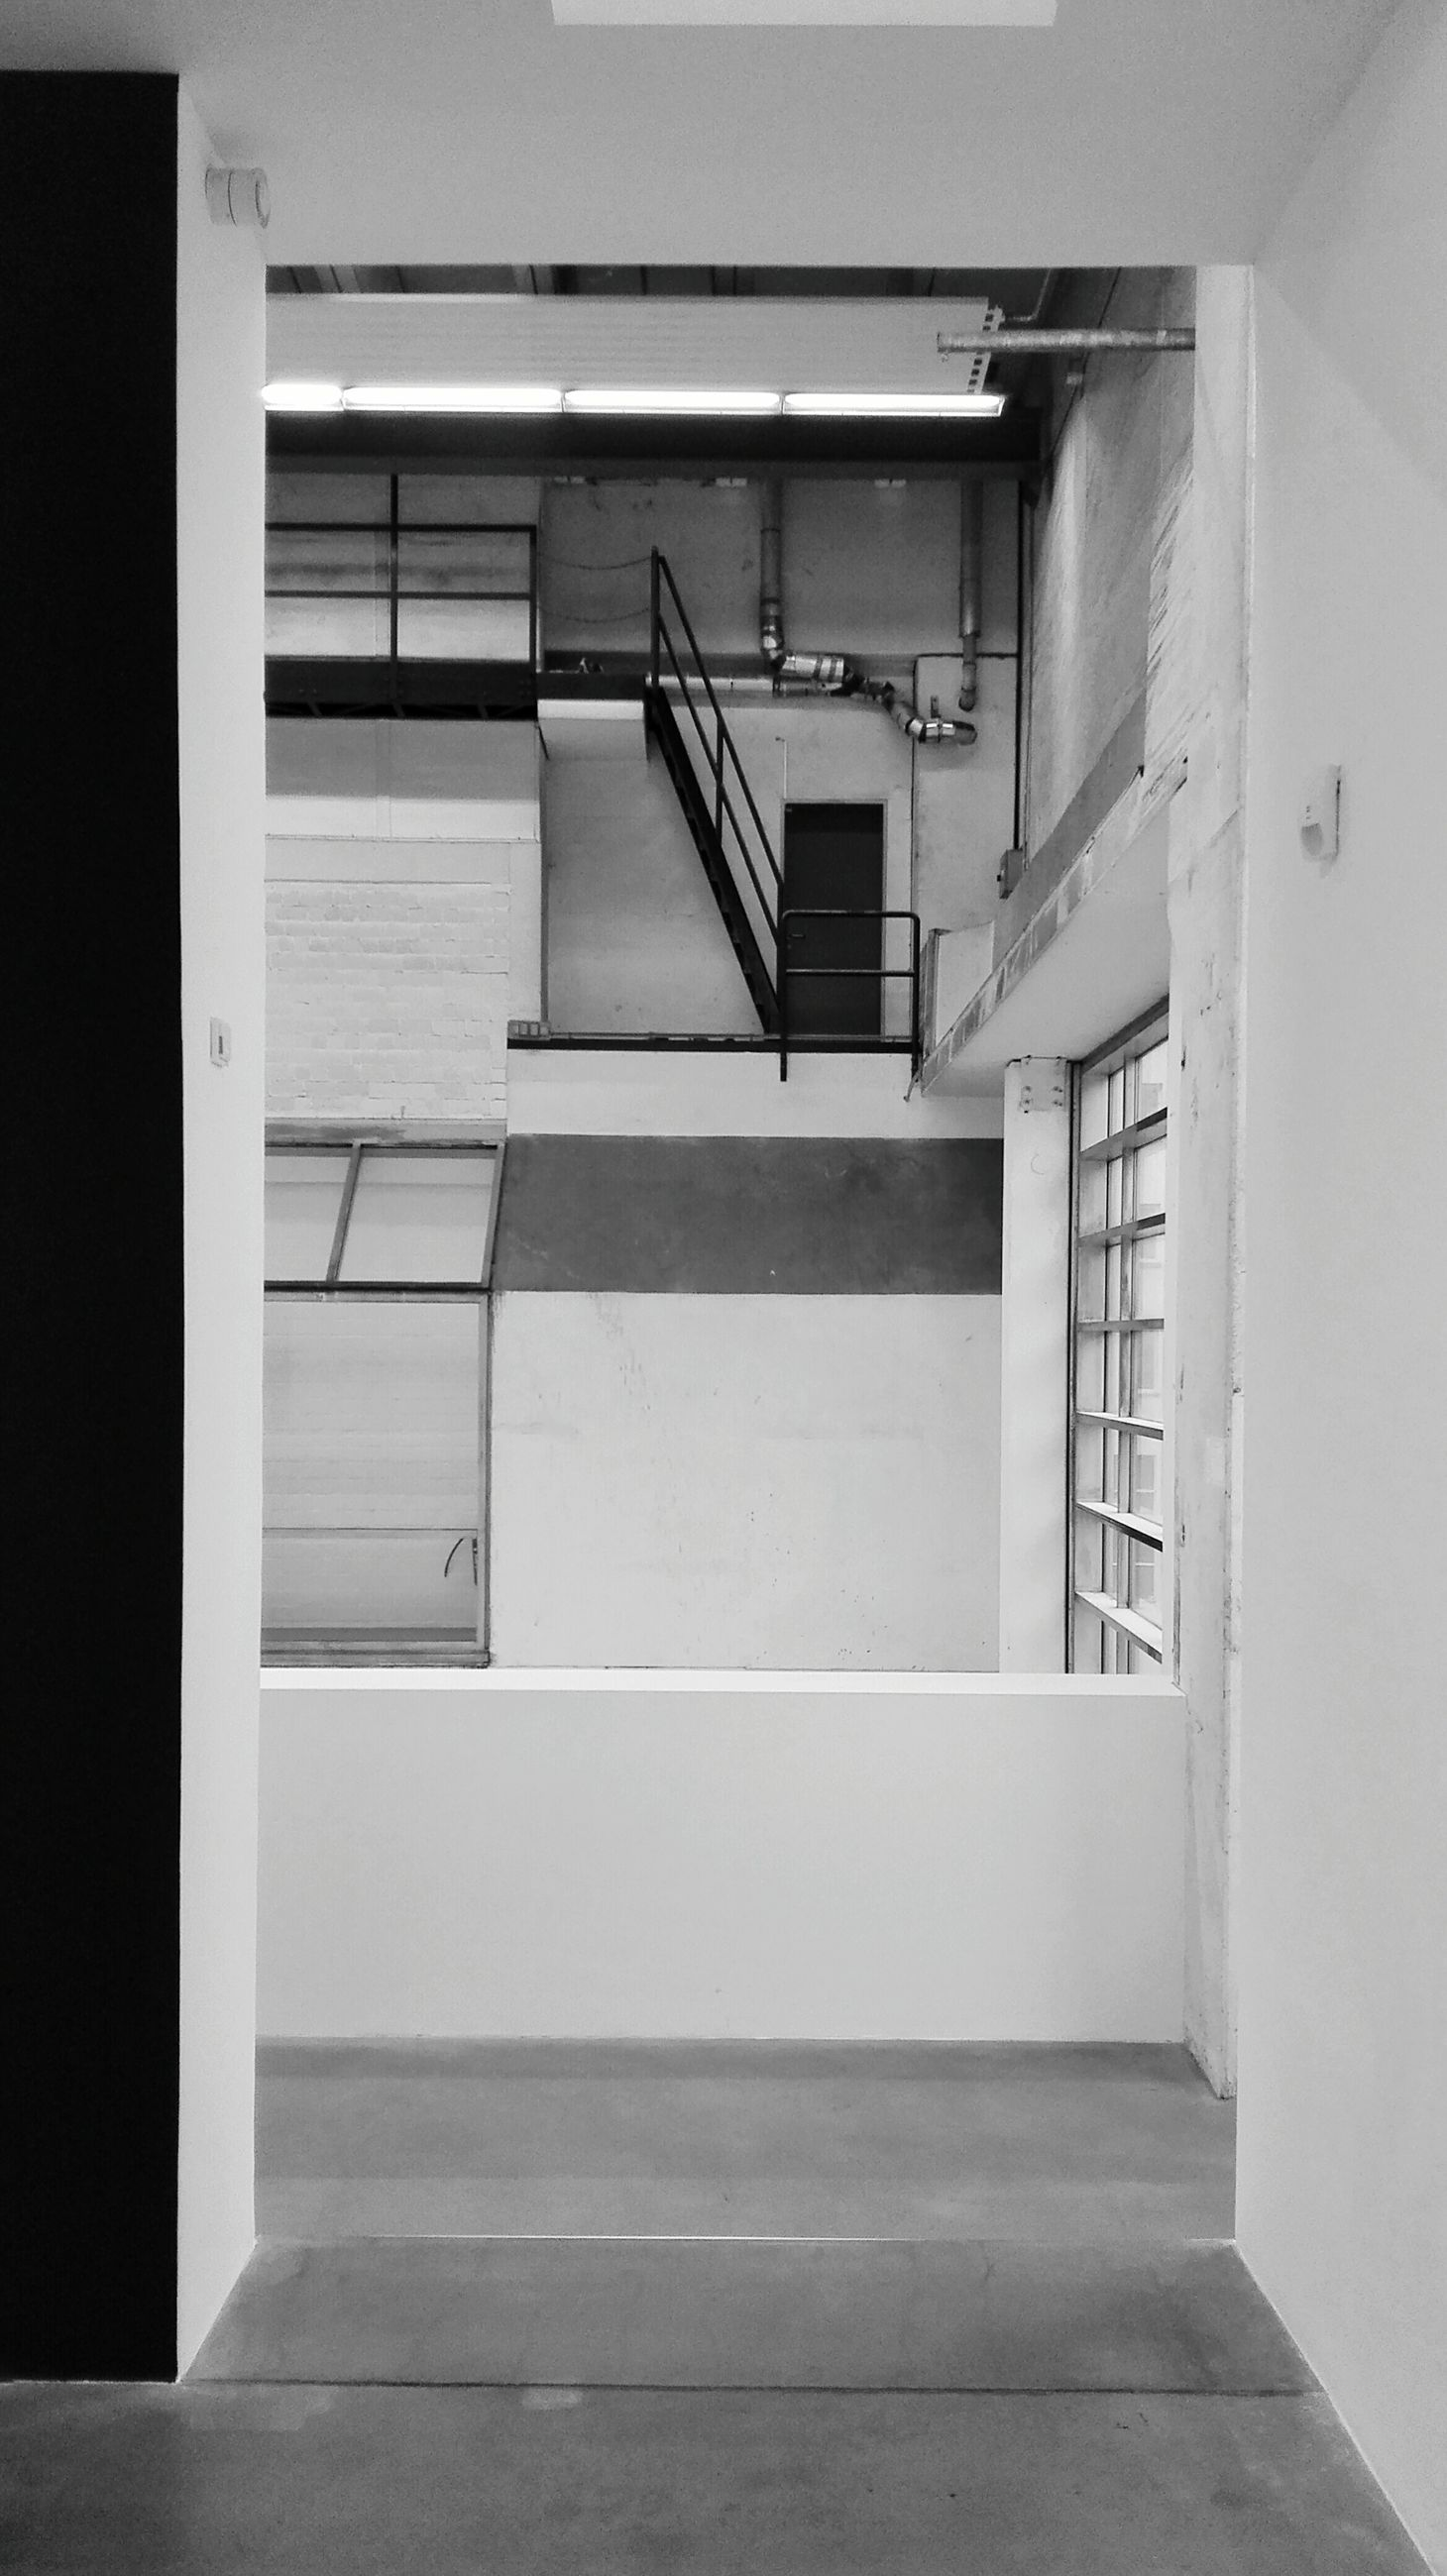 architecture, built structure, door, building exterior, window, indoors, house, building, entrance, closed, sunlight, no people, steps, day, wall, railing, wall - building feature, residential structure, doorway, open